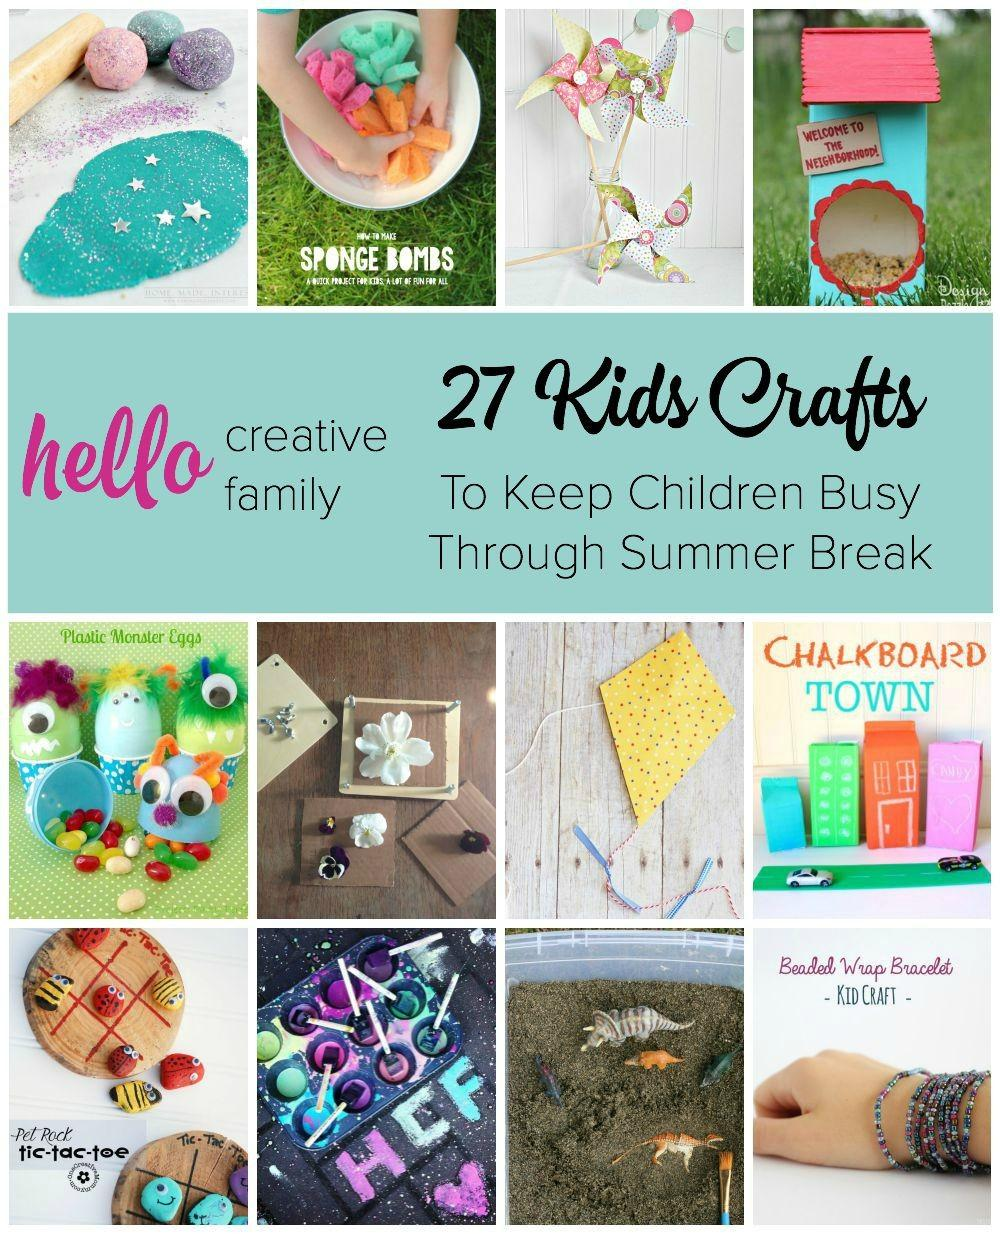 Kids Crafts Diy Projects Summer